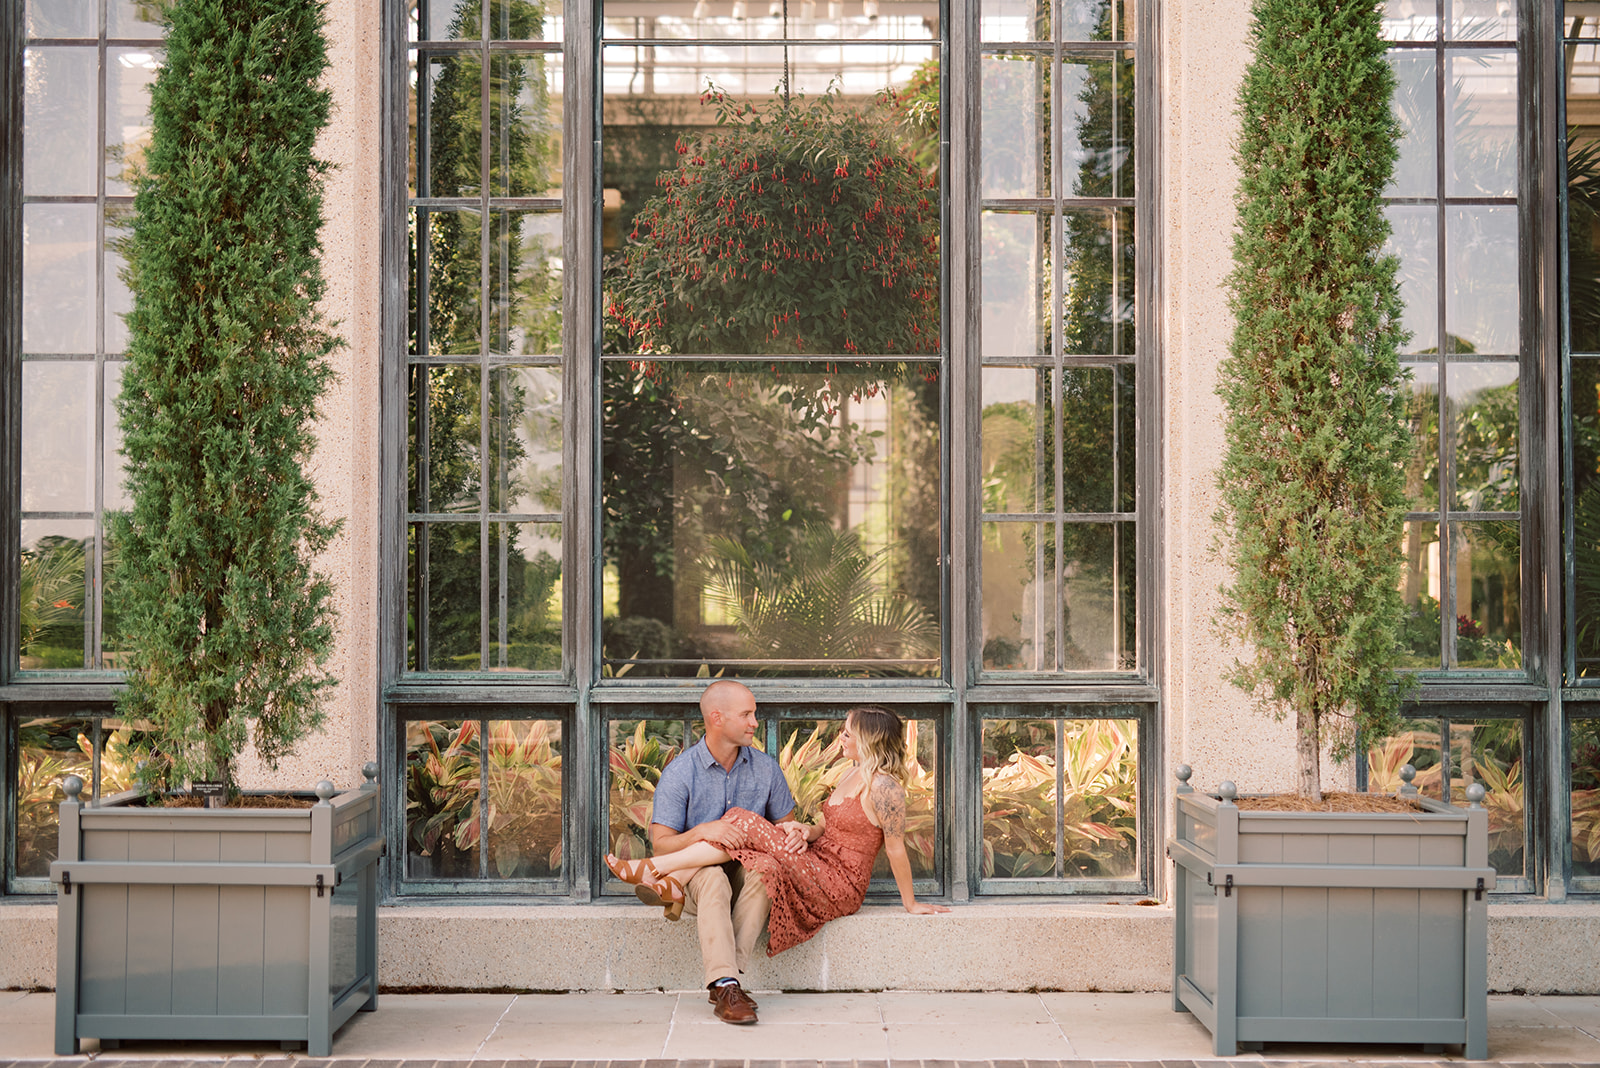 Taking engagement photos outside of the conservatory at Longwood Gardens.